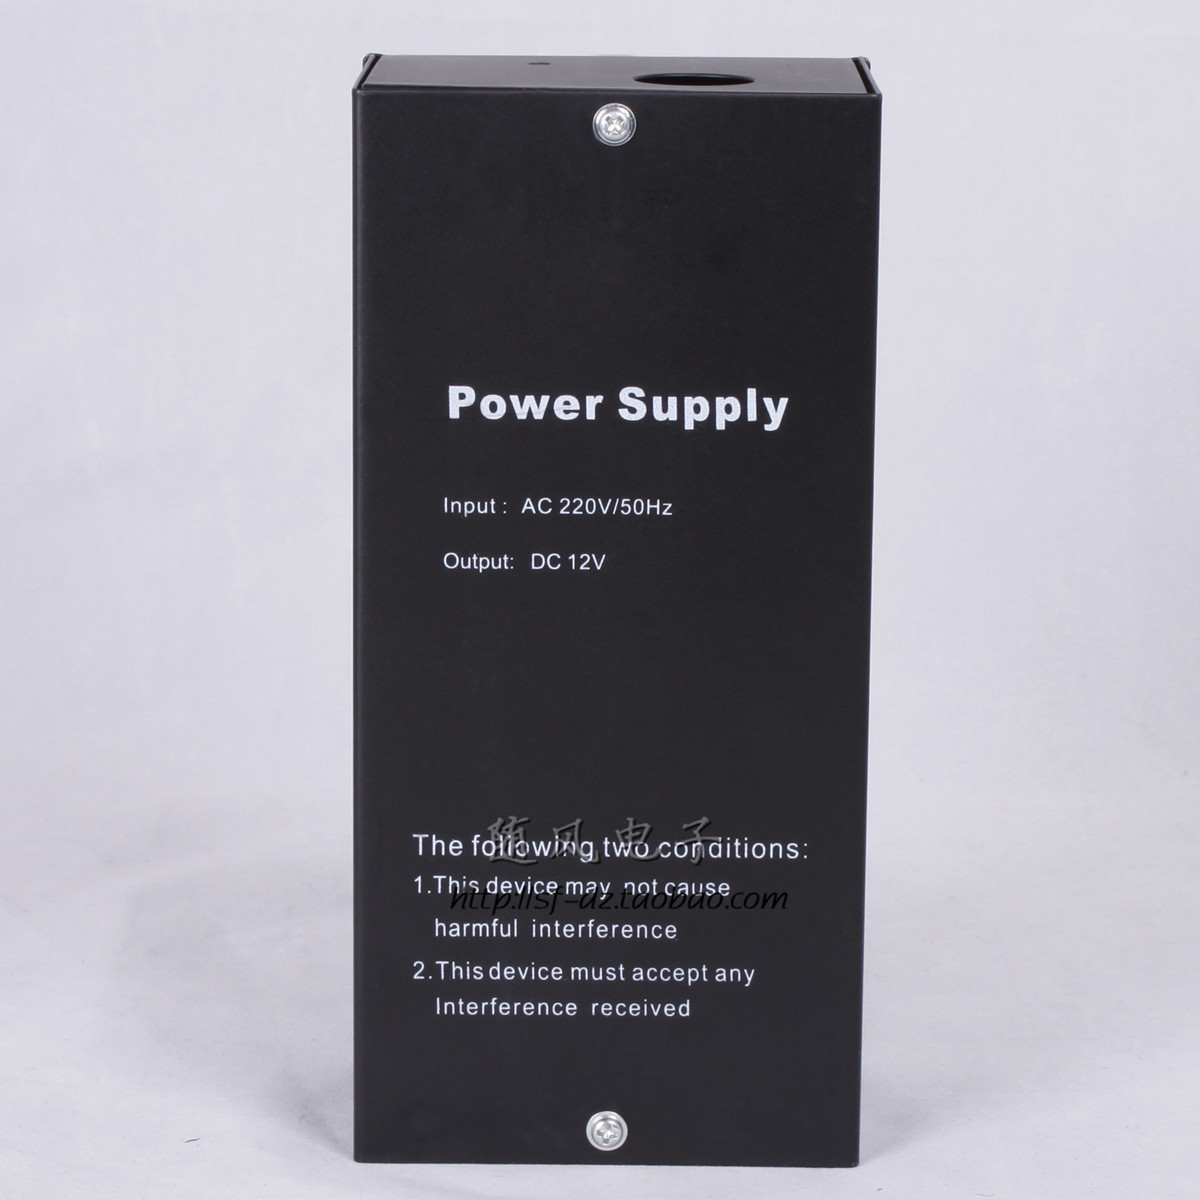 12v5a 12v3a 90-degree power supply access control one piece machine special power supply magnetic lock electric lock(China (Mainland))